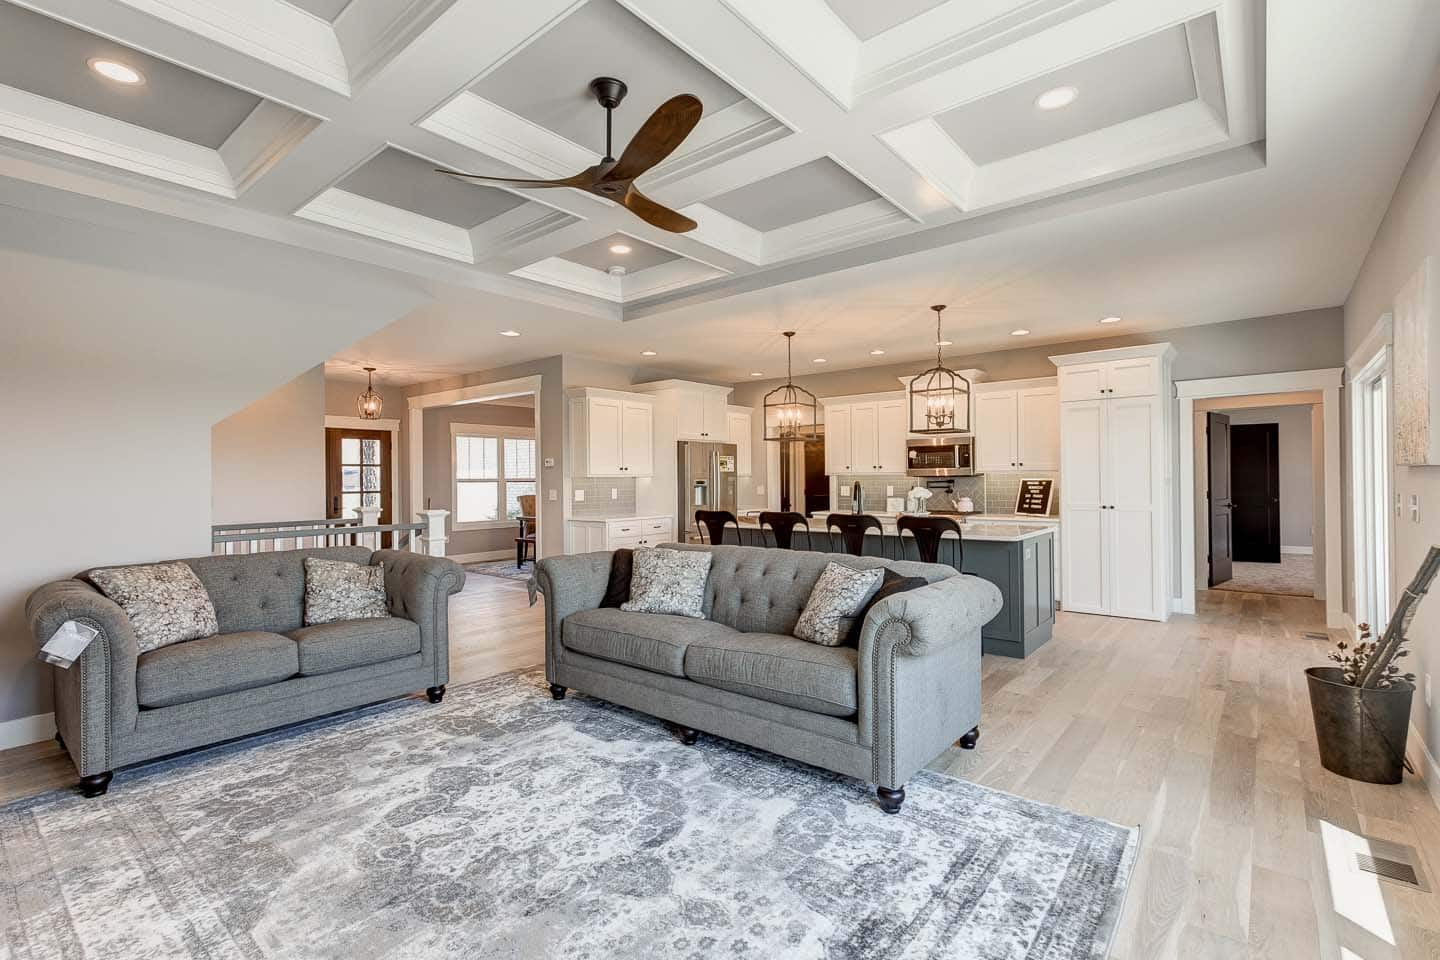 Evansville Parade of Homes | Reinbrecht Homes | Centerra Ridge Lot 156 Living Room